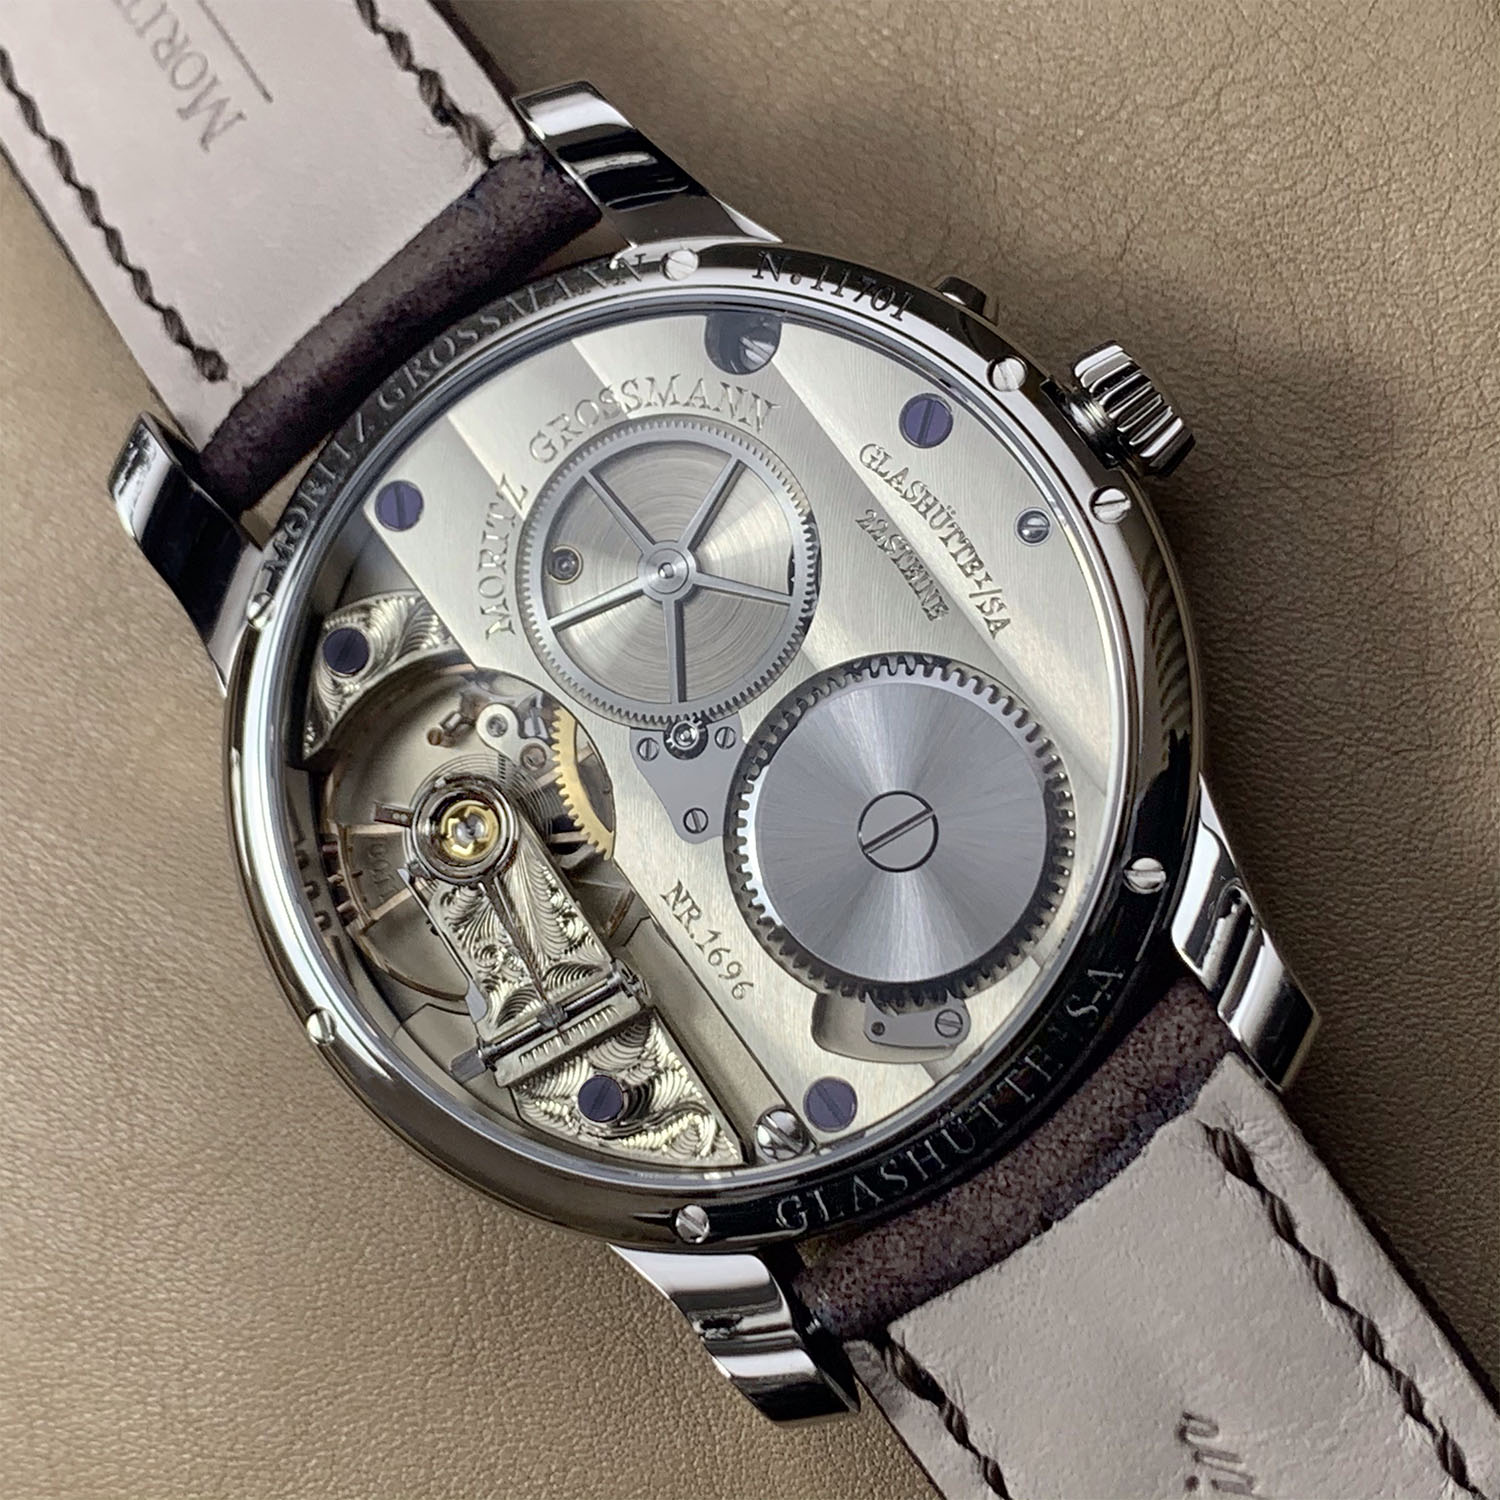 Moritz Grossmann Central Seconds